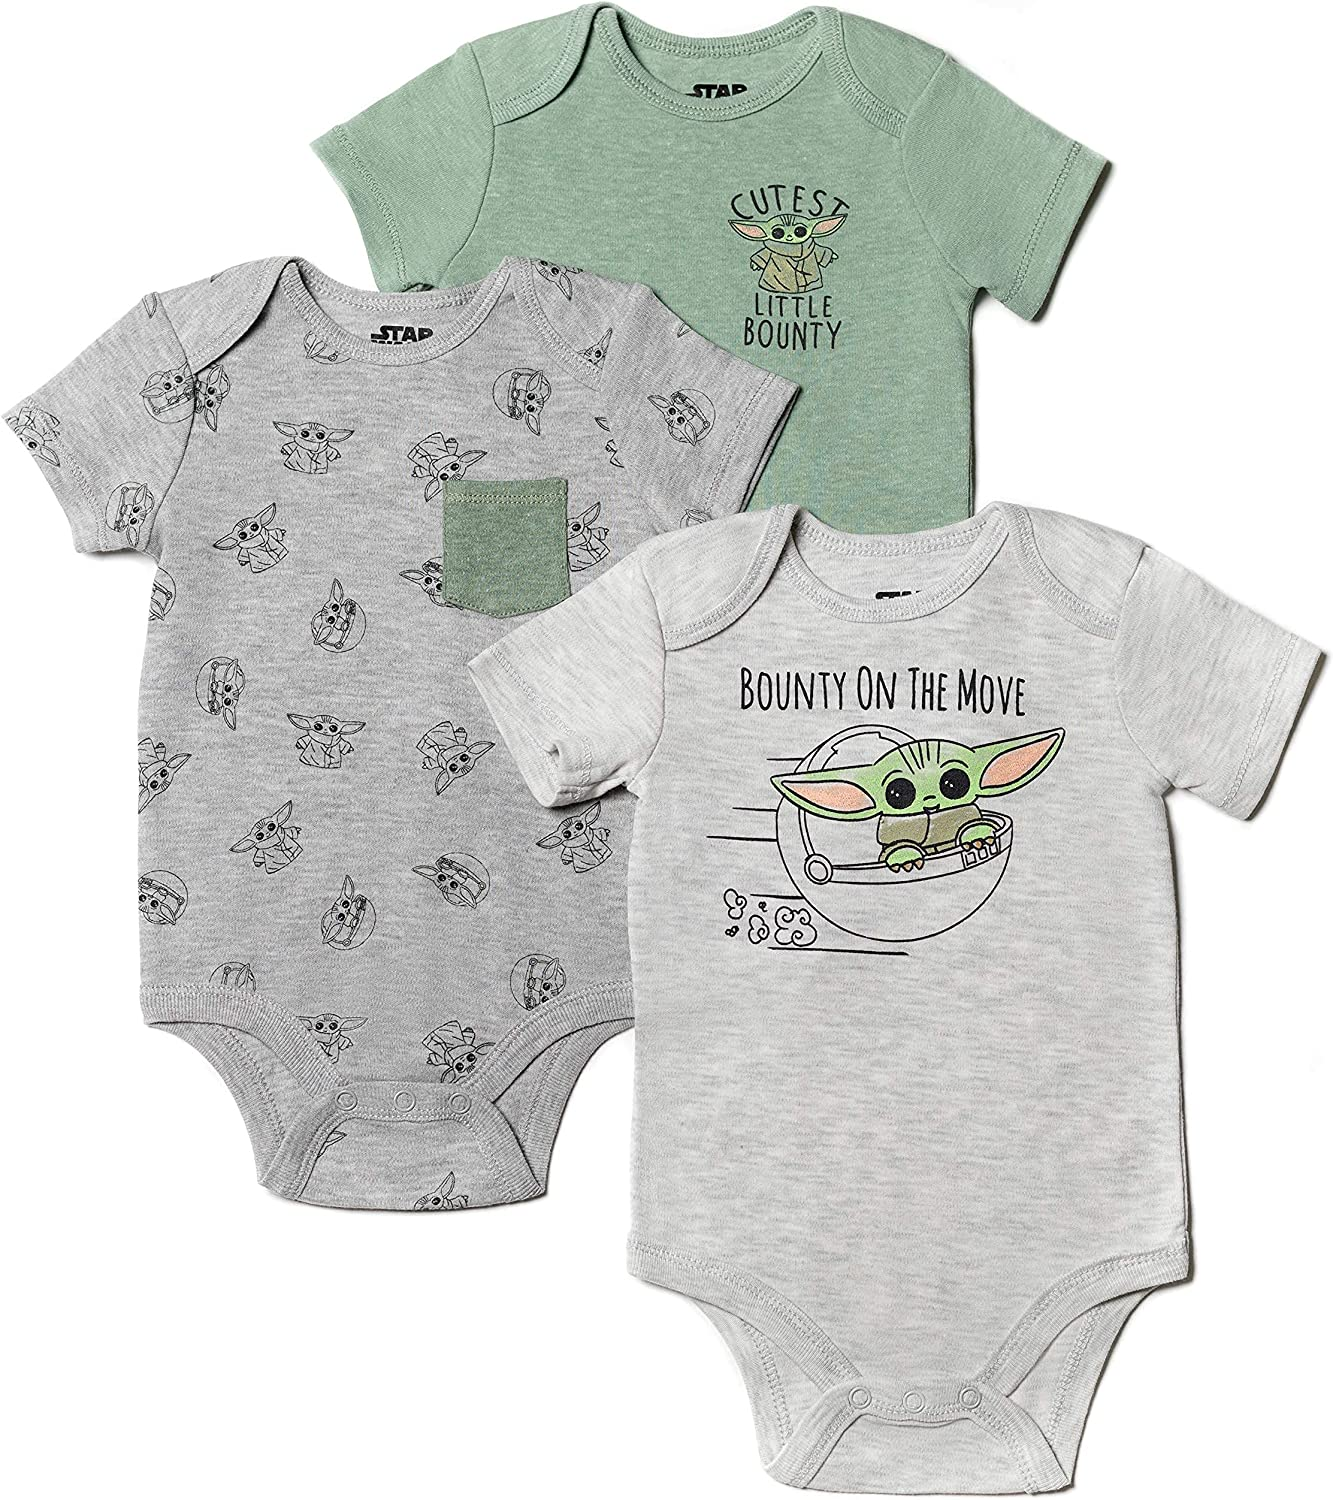 Star Wars Mandalorian The Child Baby Jogger 5 Piece Bodysuit Pants Set Green/Grey: Clothing, Shoes & Jewelry